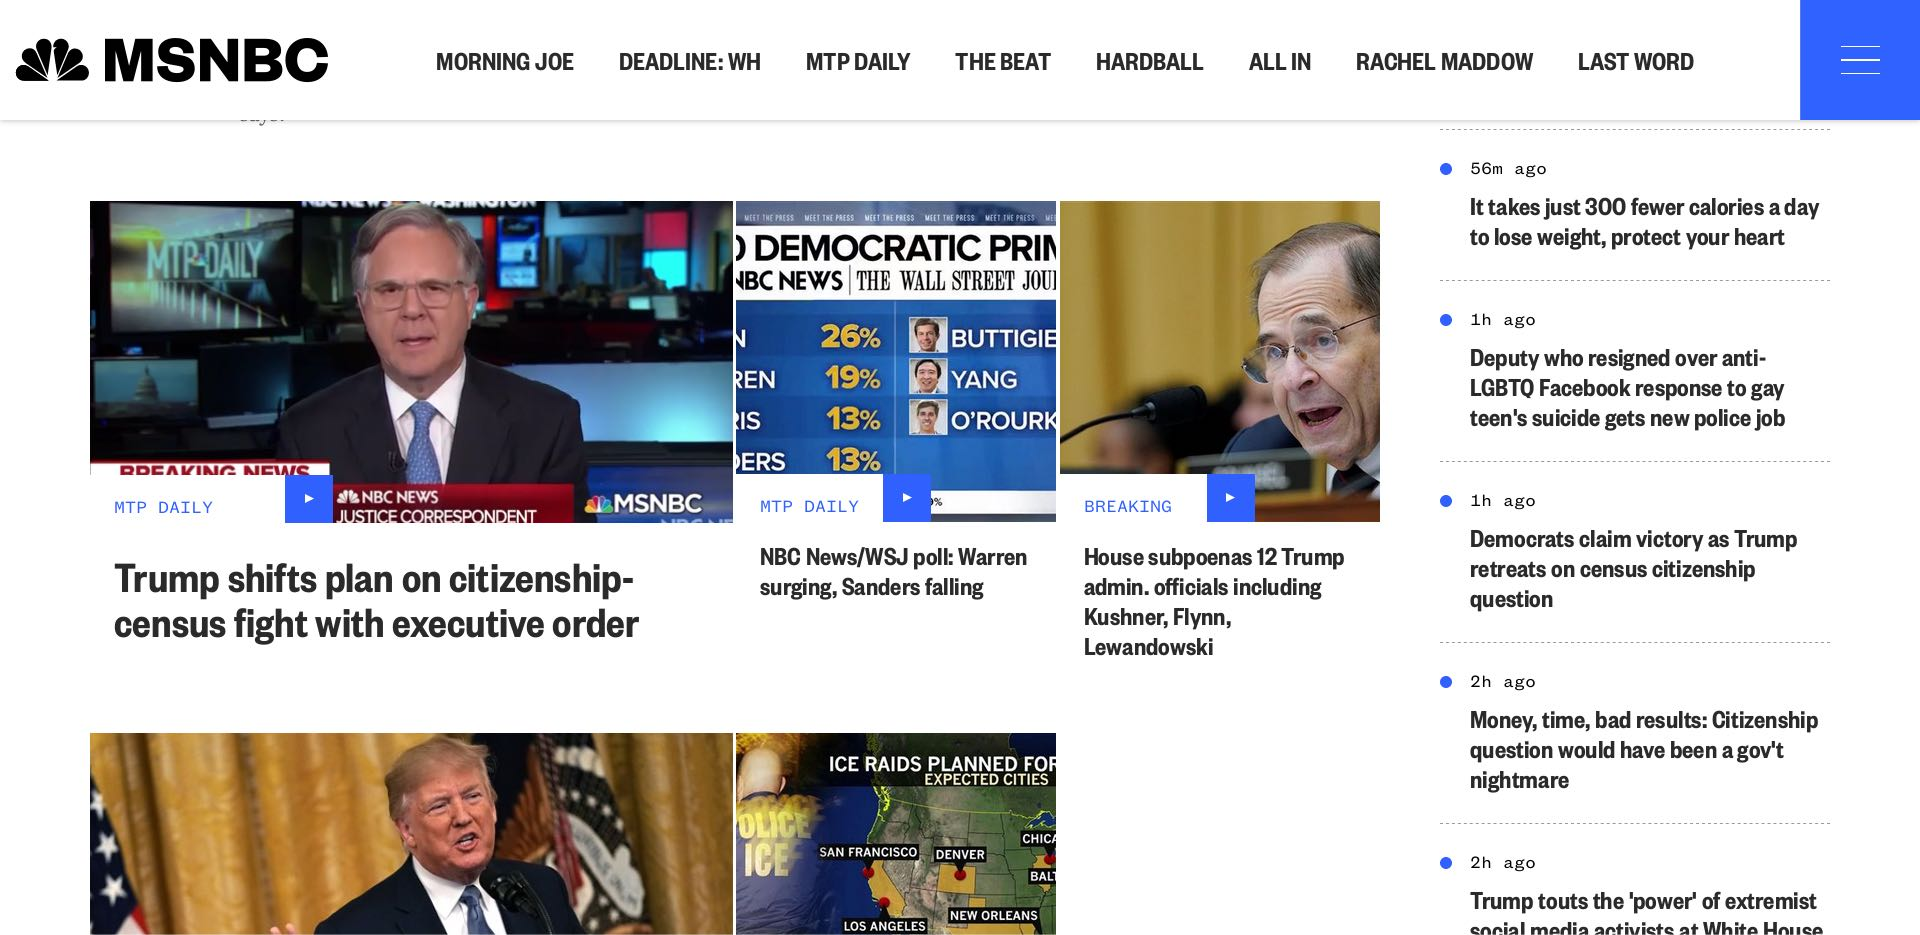 The MSNBC home page on July 7, 2019